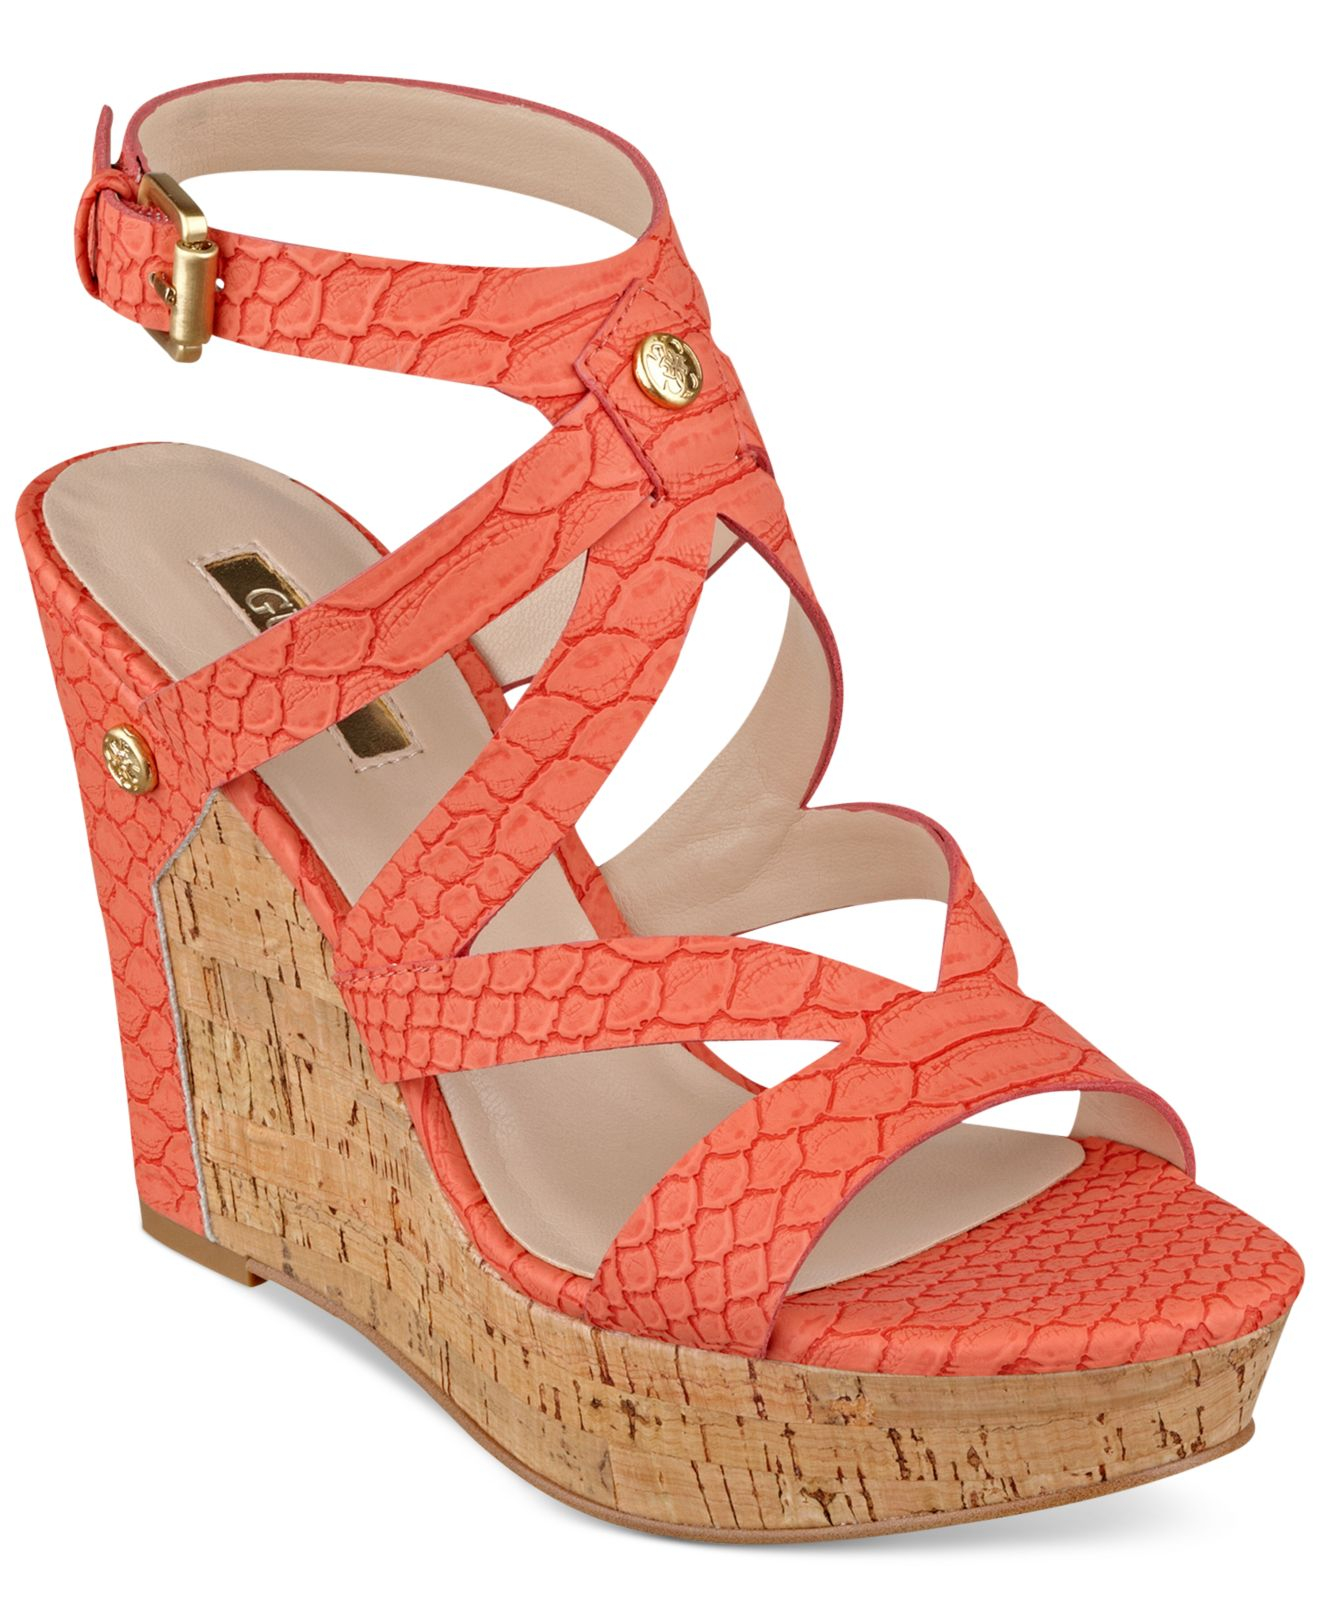 Womens orange wedge sandals